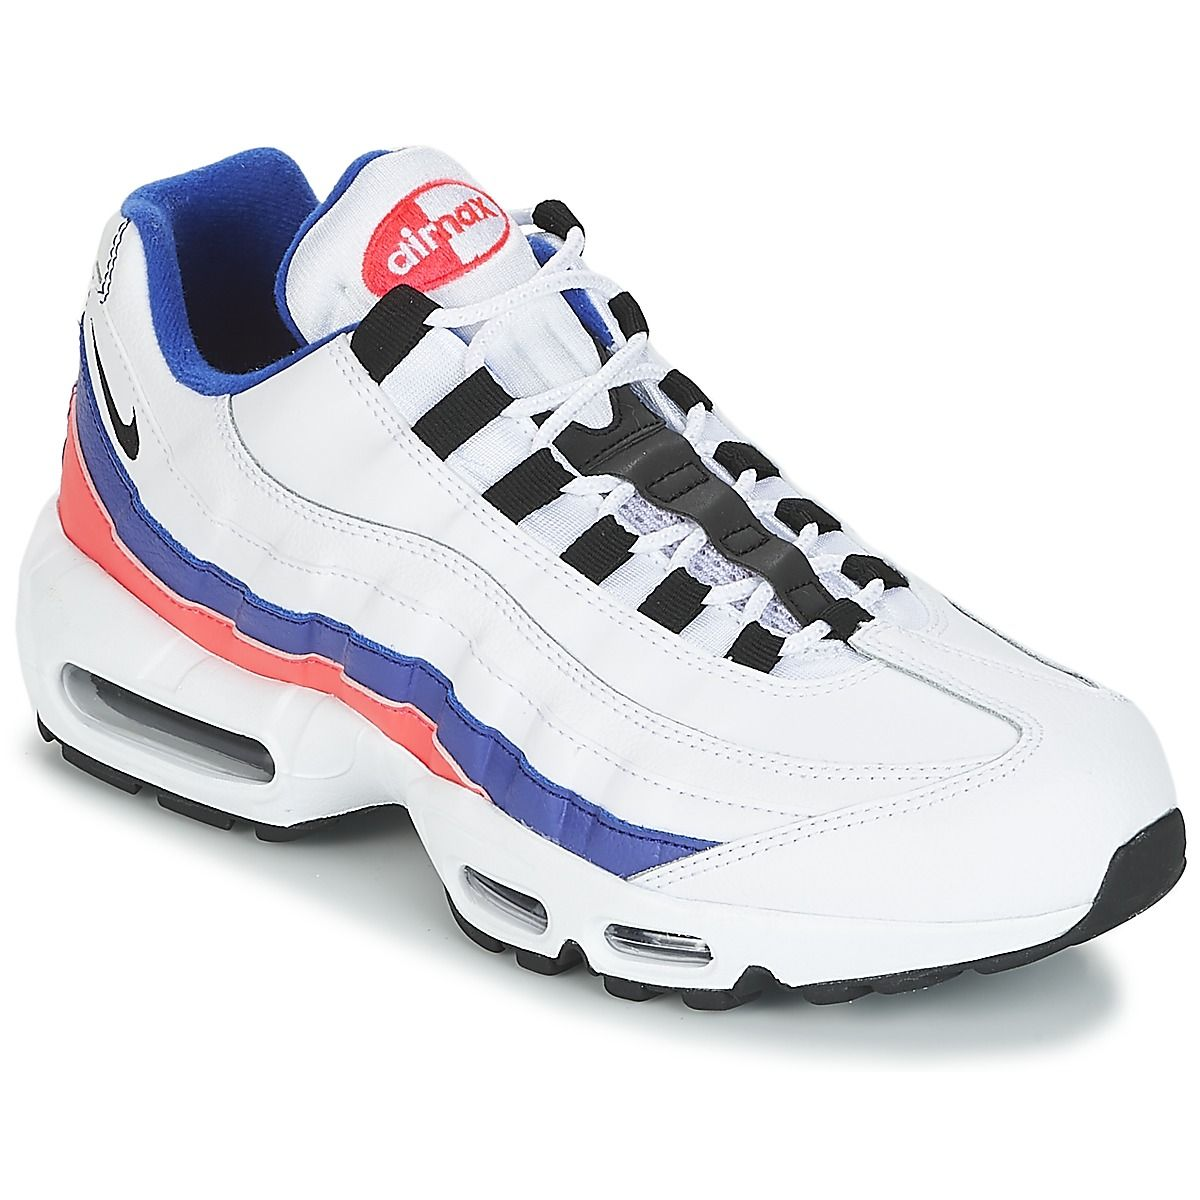 cheaper ac5bb 99713 Nike AIR MAX 95 ESSENTIAL Blanc   Bleu   Rose